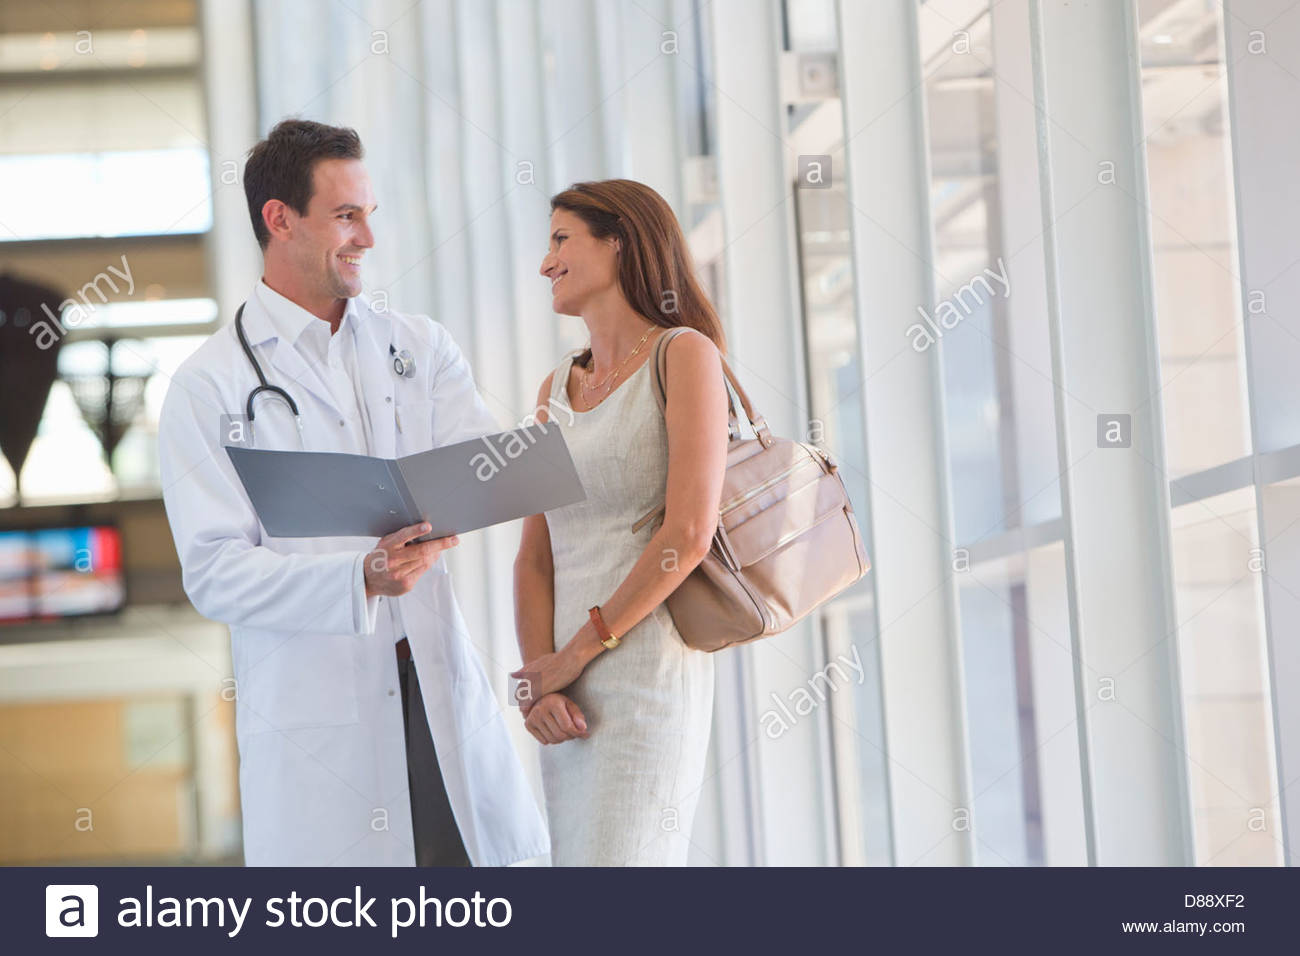 Smiling doctor and patient reviewing medical chart in hospital corridor - Stock Image